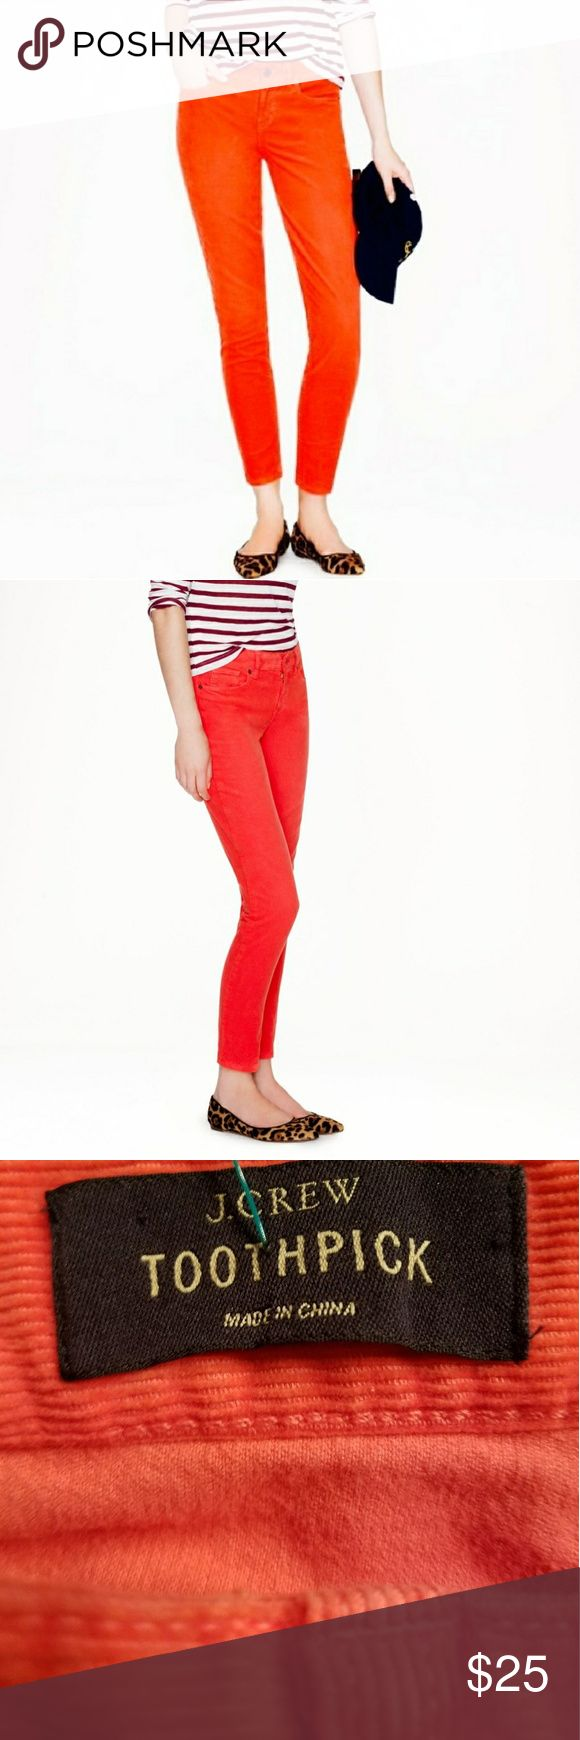 J. Crew toothpick orange corduroy ankle pants EUC Toothpick ankle corduroys. Color has been  called orange, red, coral. I think it is an orange red shown accurately in my pics. Size 32. More pics and measurements to follow. These look new. J. Crew Pants Ankle & Cropped